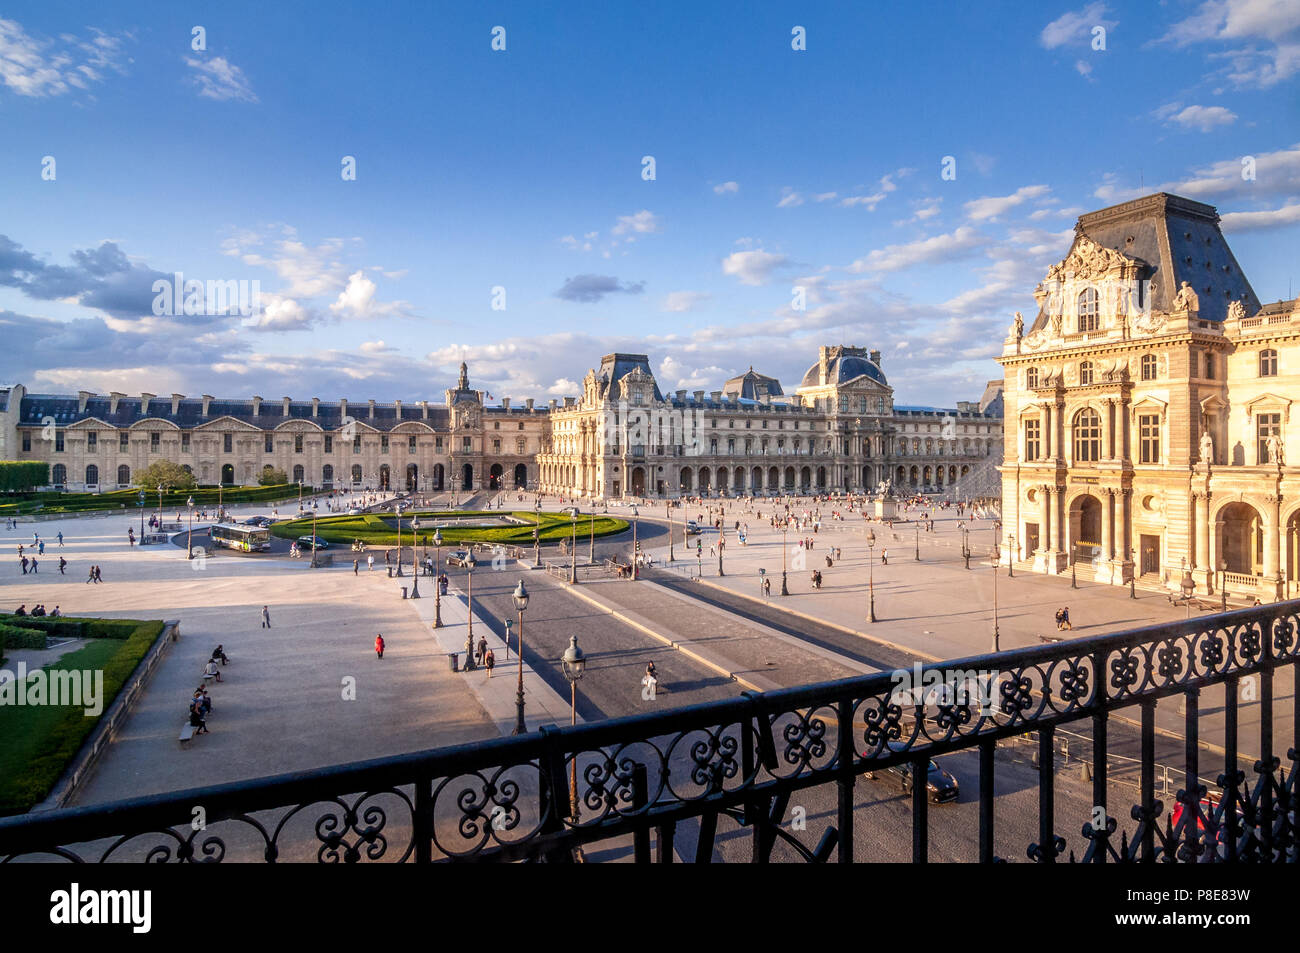 The Tuileries Garden in Paris, France. Stock Photo